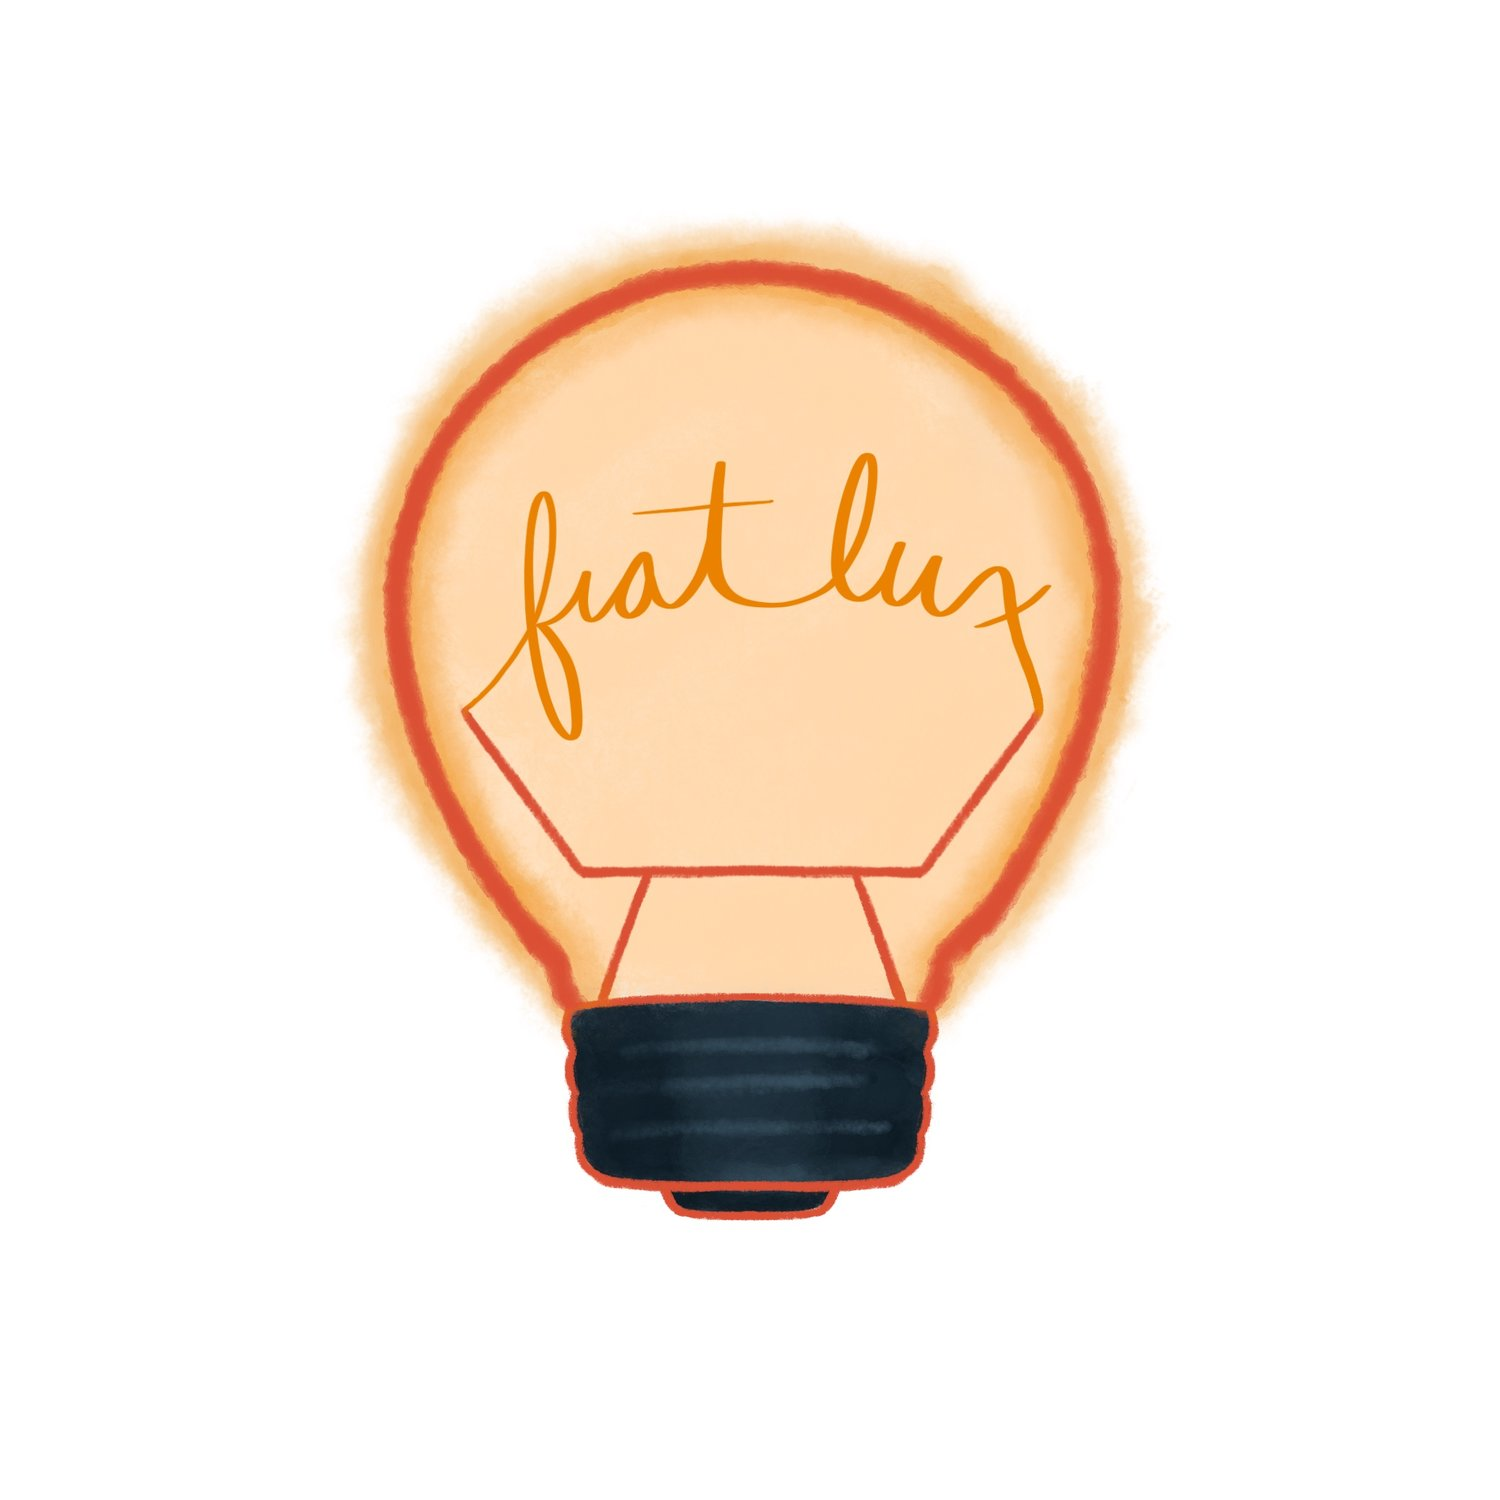 Fiat Lux Illustration